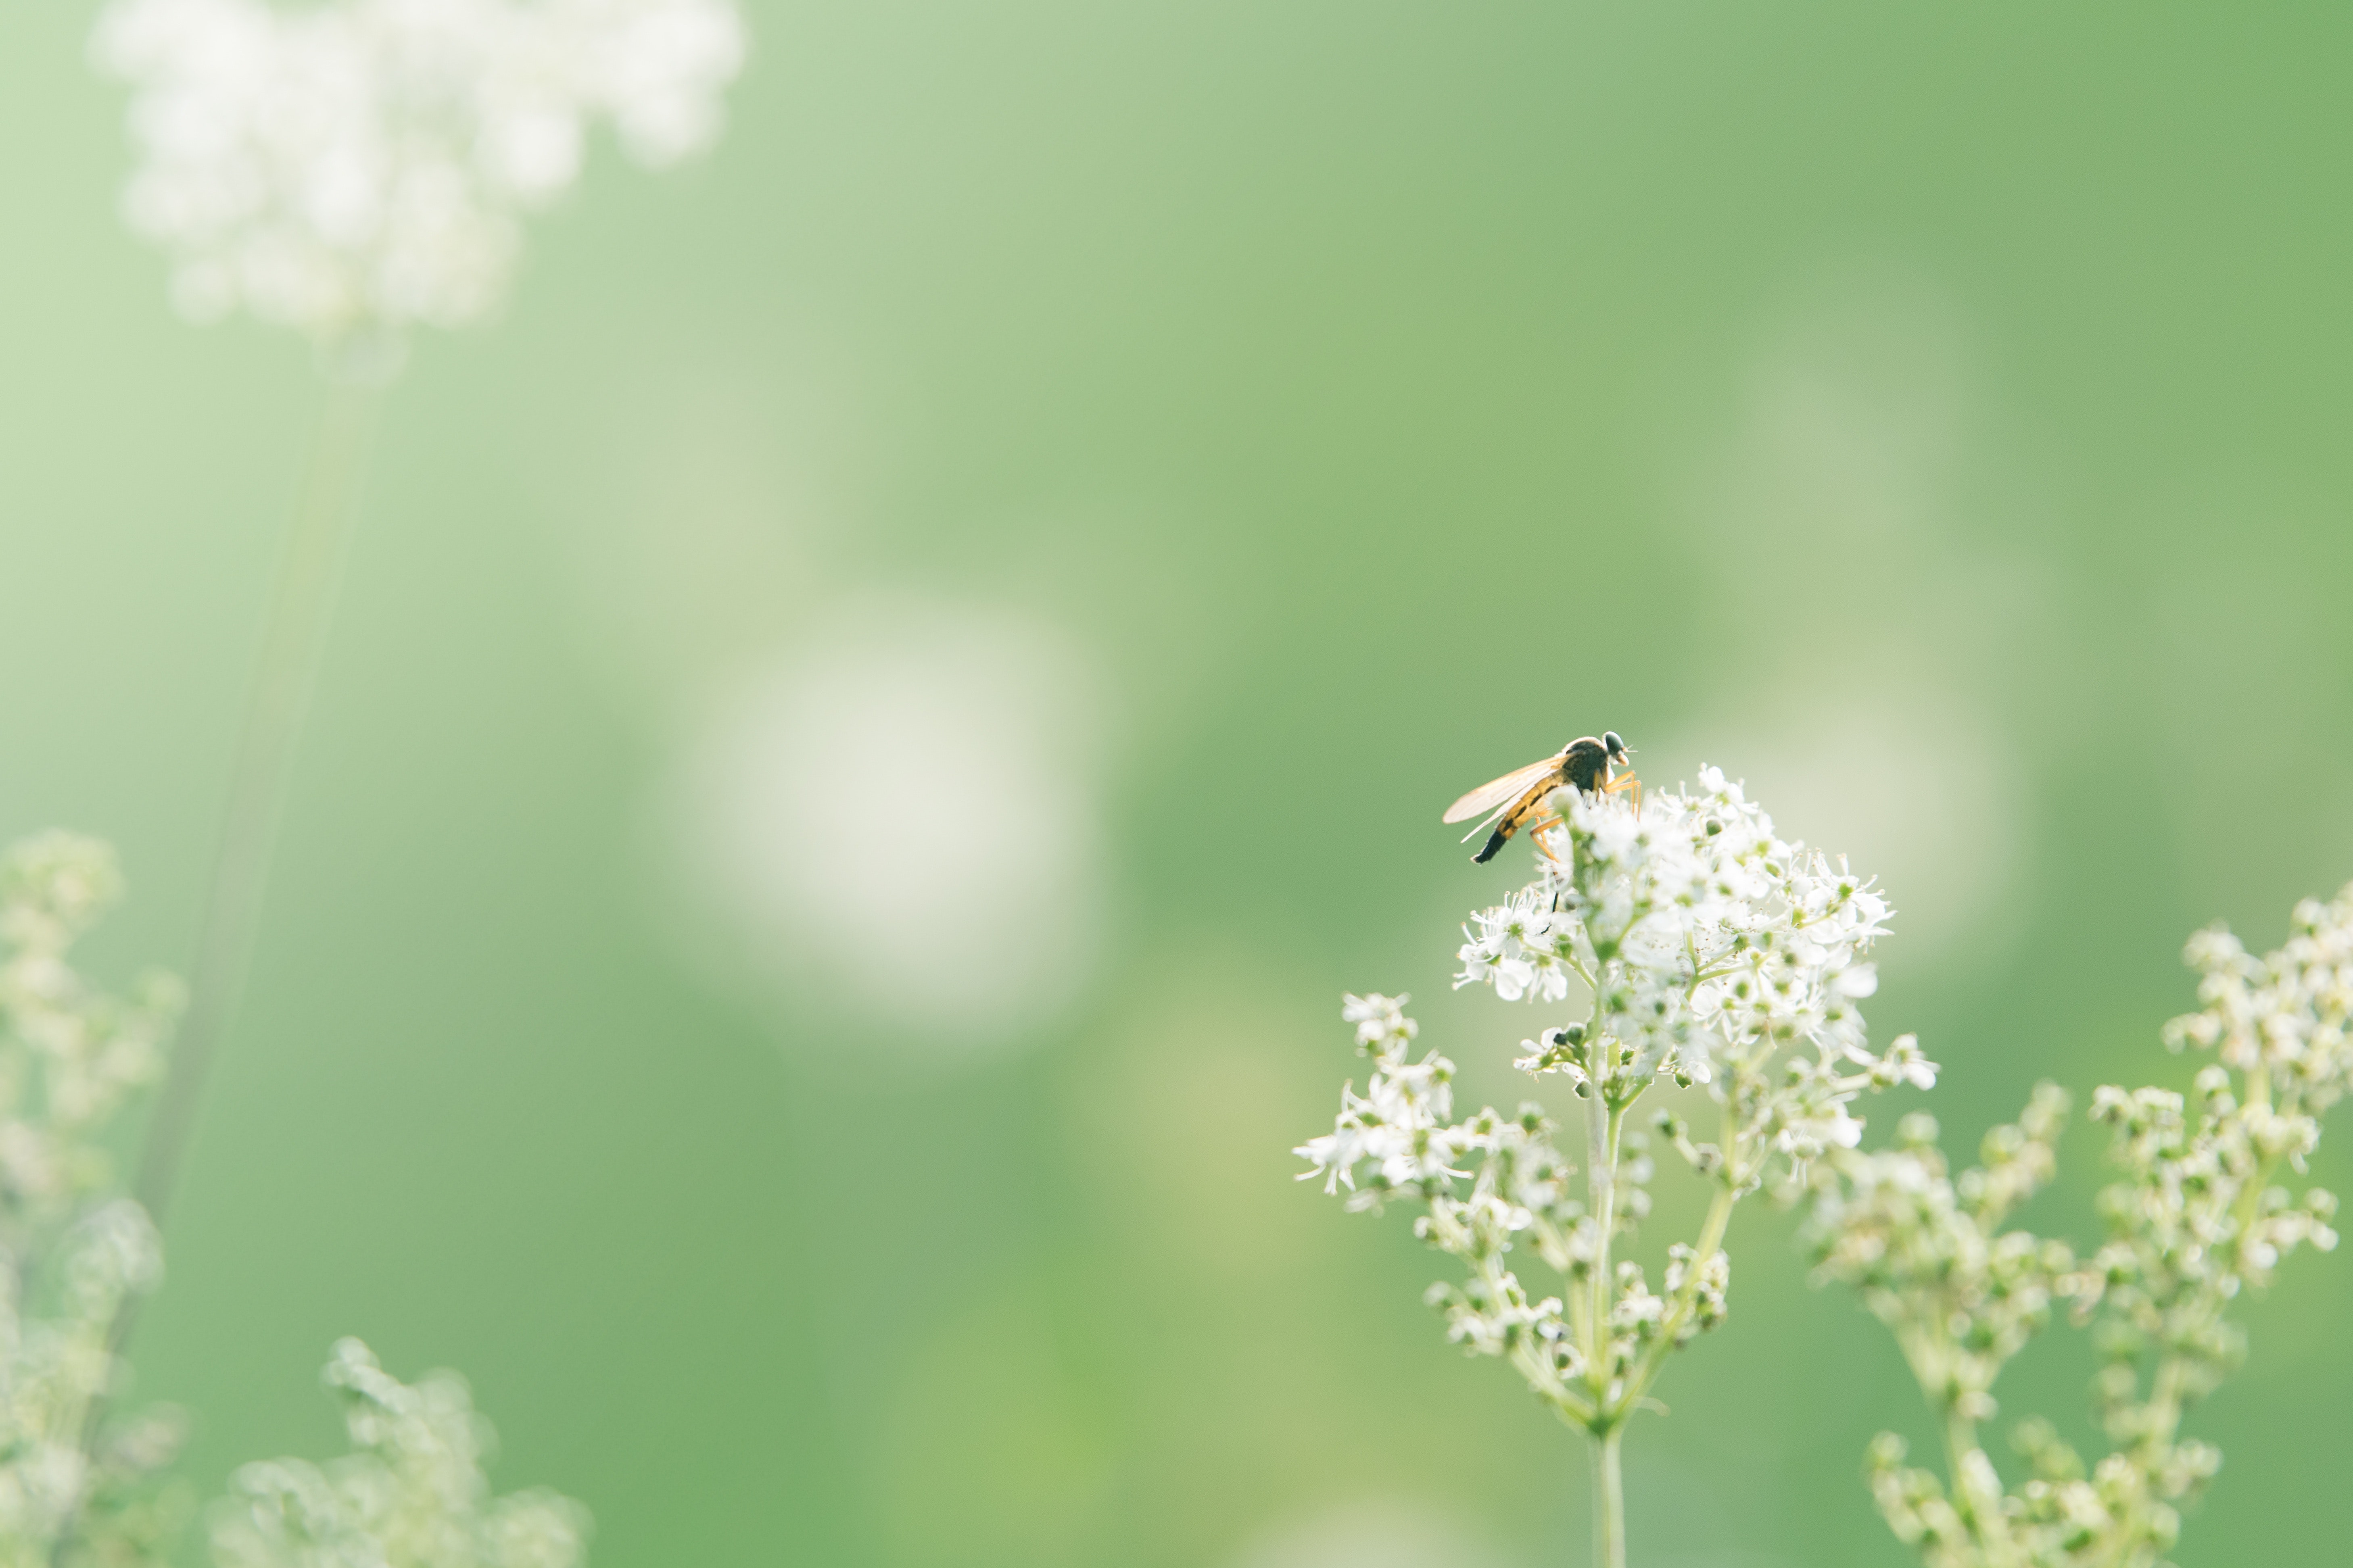 Black and Orange Winged Insect Pearch on Baby's Breath, Bloom, Blossom, Flora, Flowers, HQ Photo